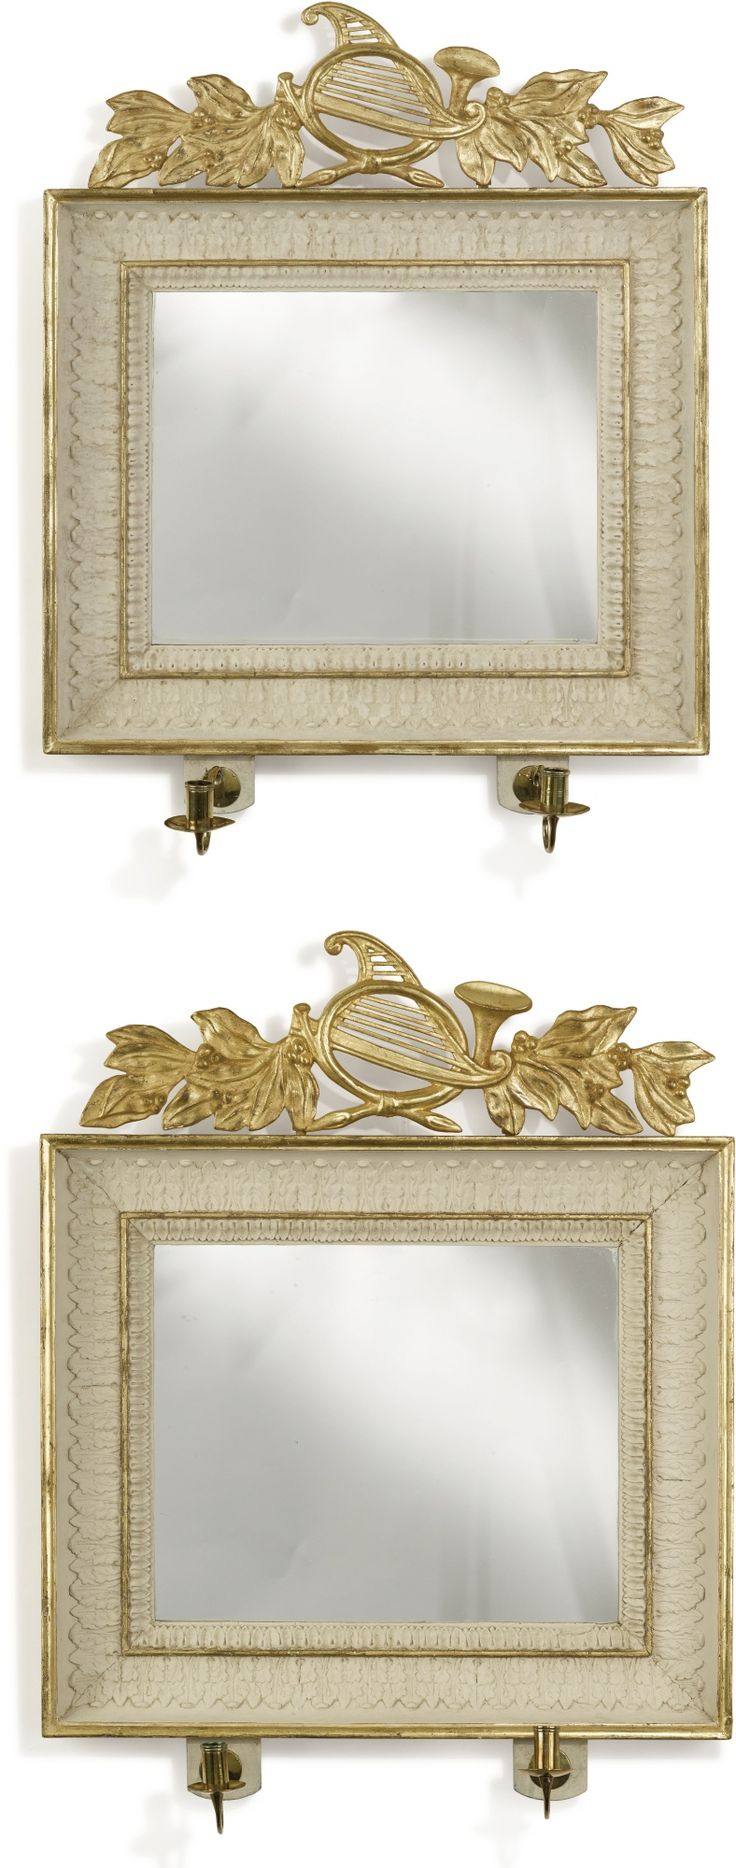 A PAIR OF GUSTAV IV SWEDISH NEOCLASSICAL WHITE-PAINTED AND PARCEL-GILT  GIRANDOLE MIRRORS